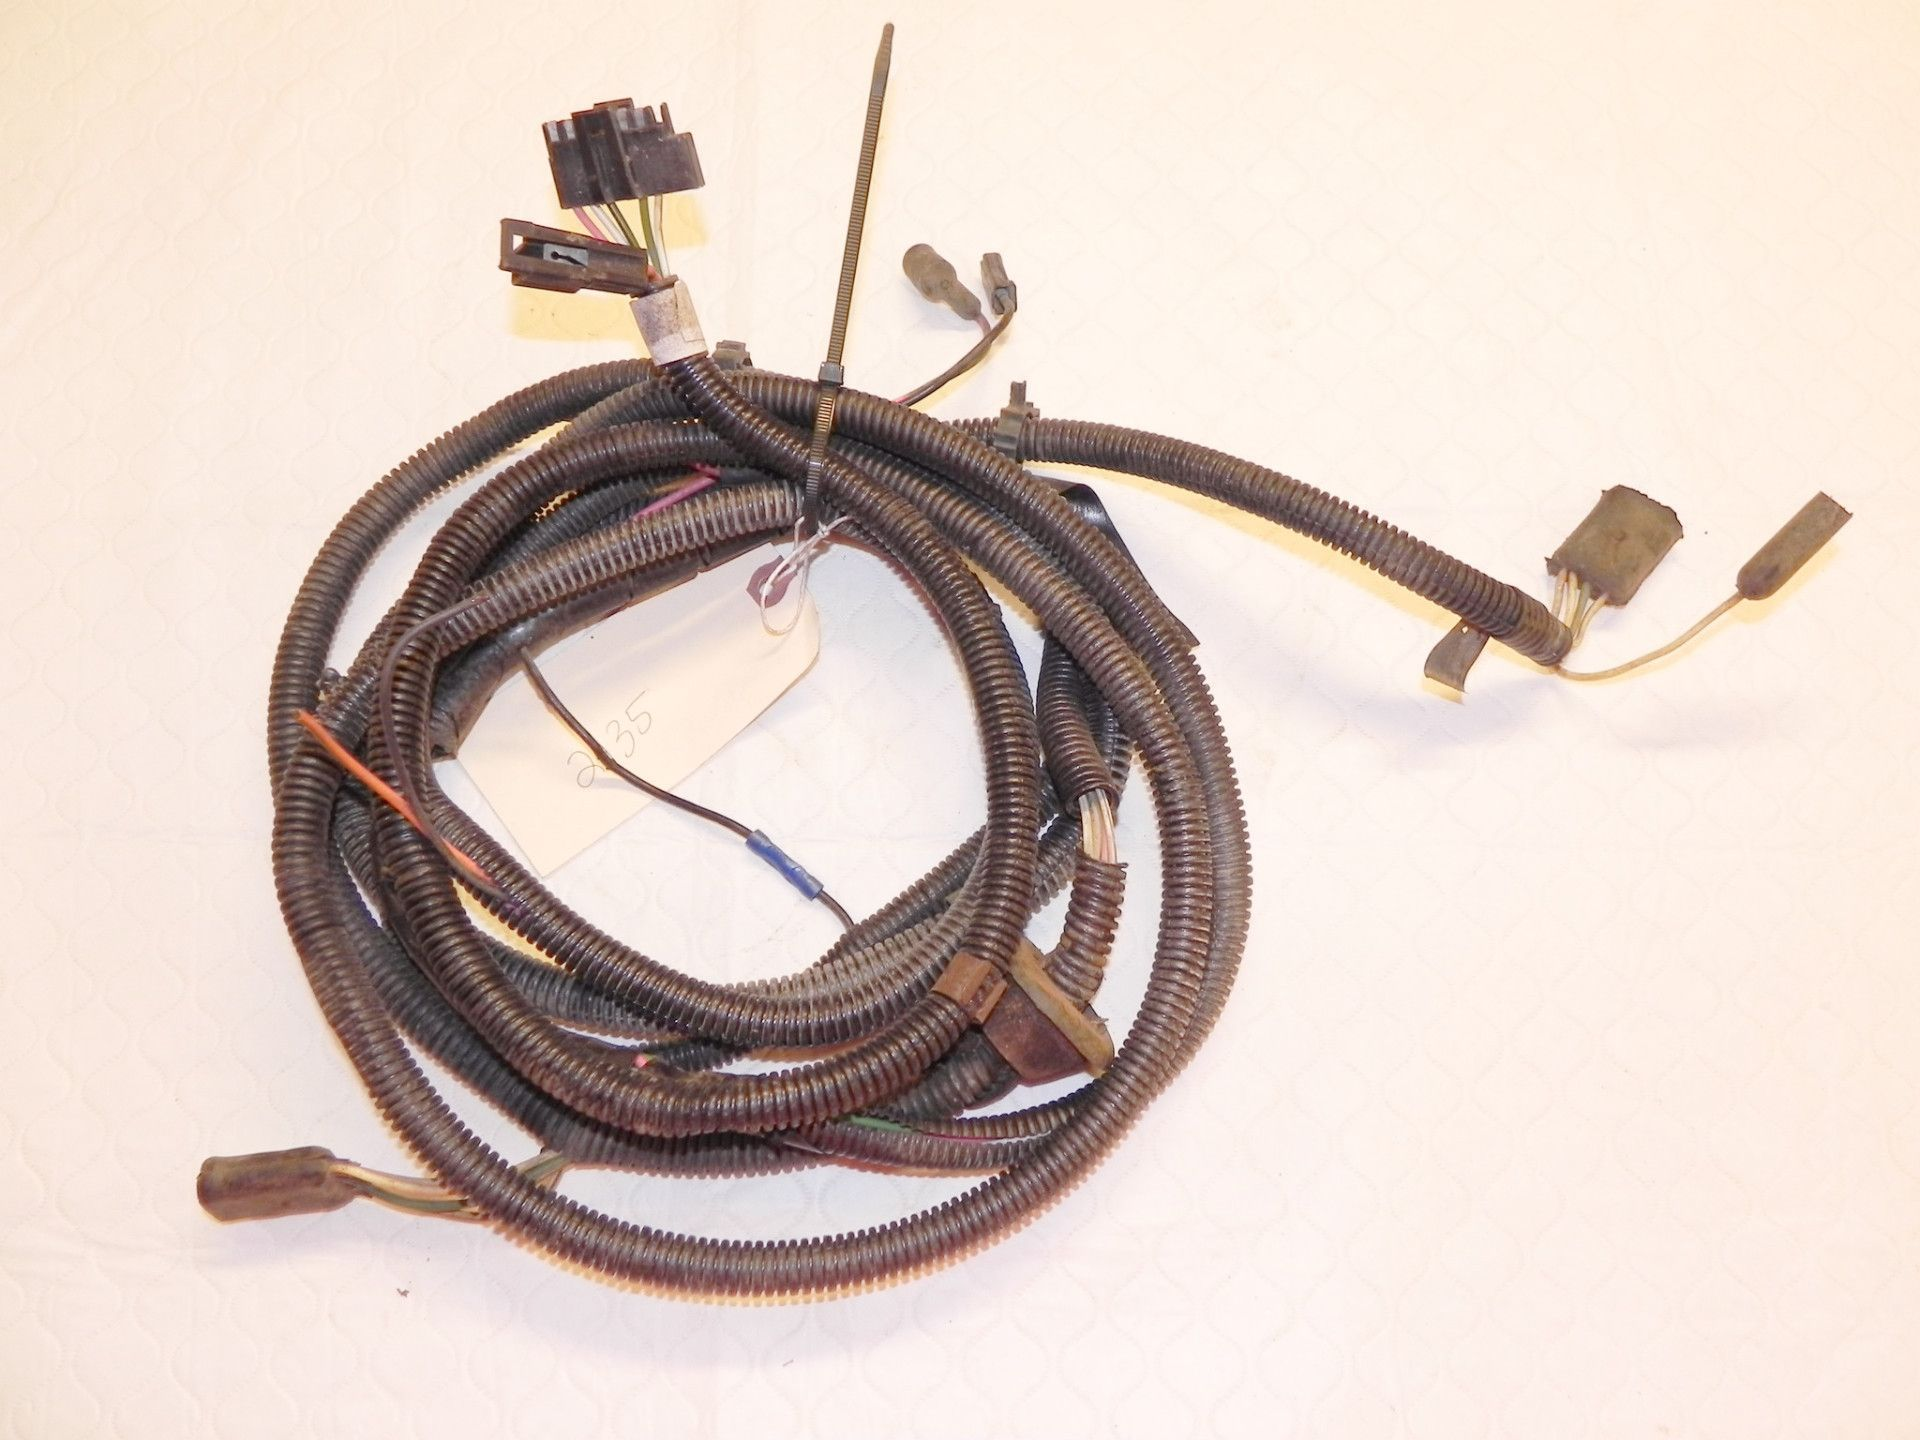 Jeep Cj578 Tail Light Wiring Harness For Parts Products Pinterest Cj5 Electrical Cj Draht